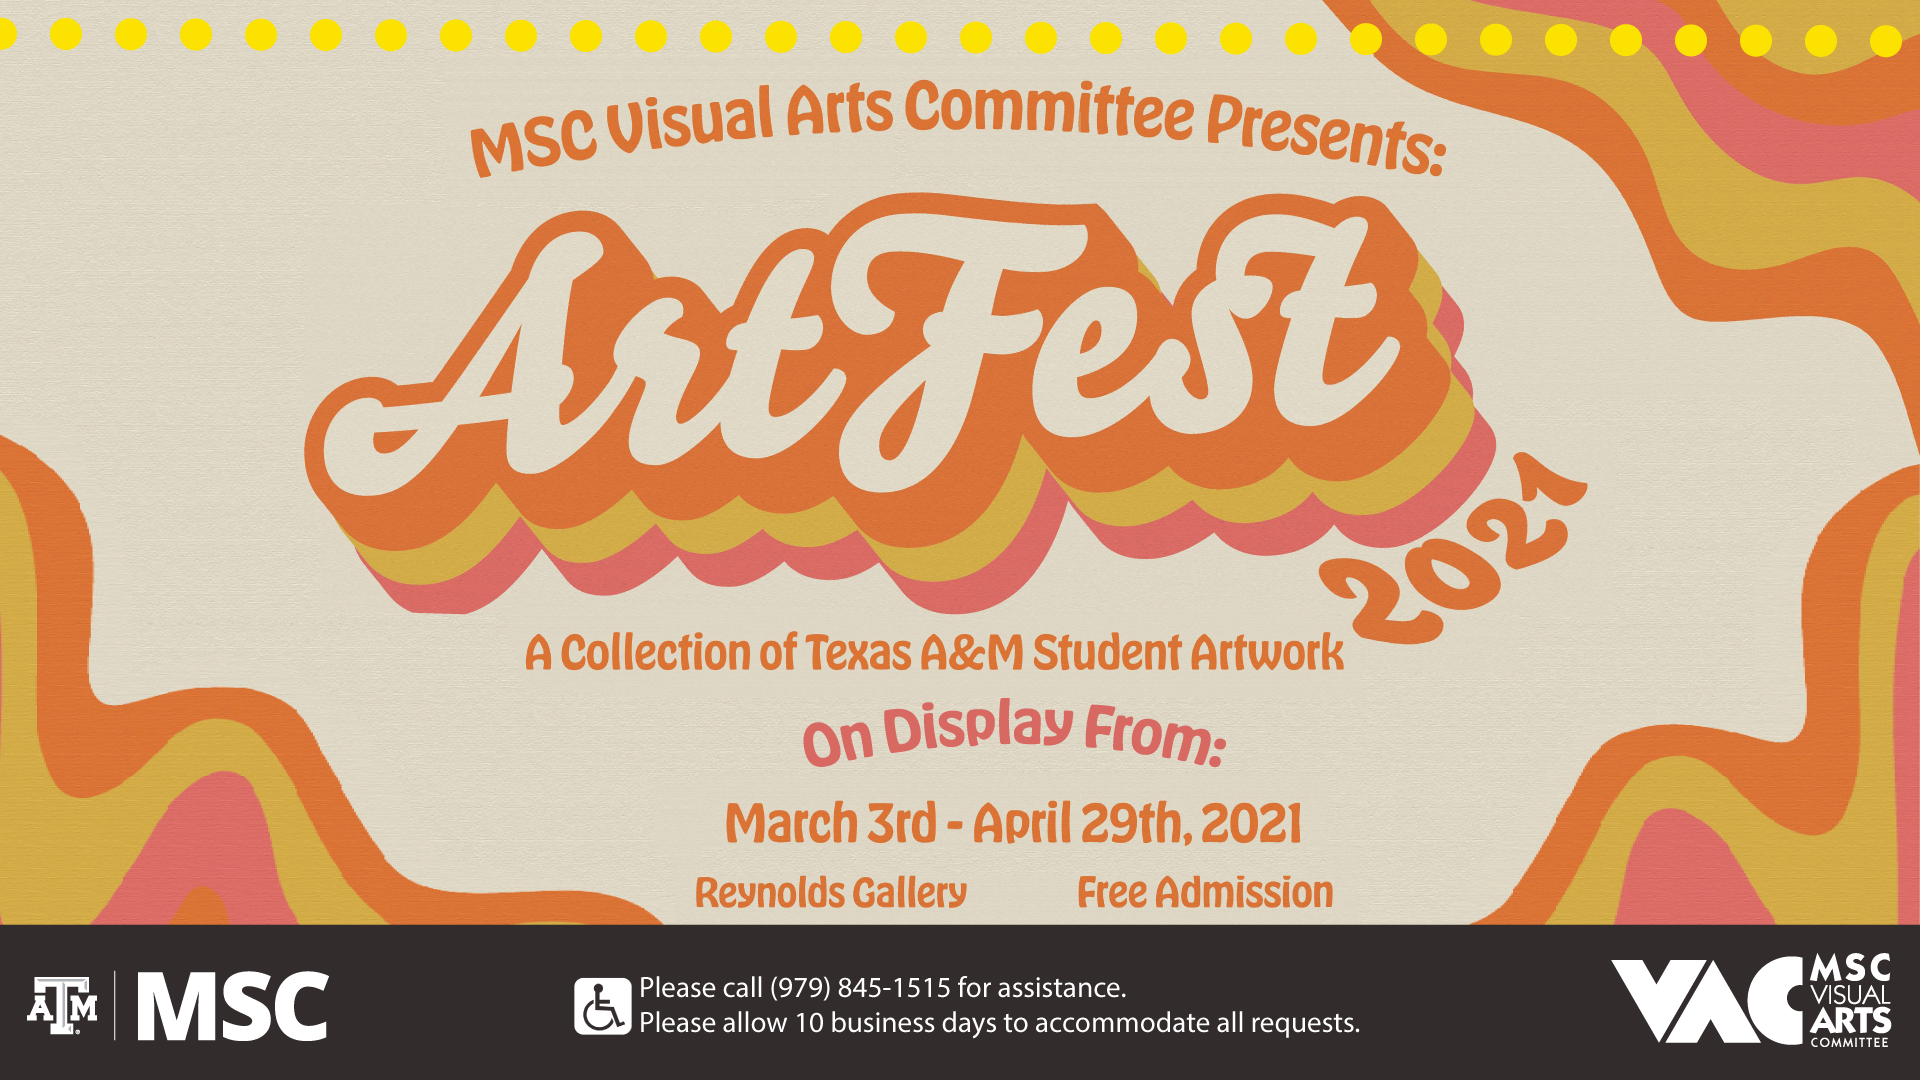 MSC Visual Arts Committee Presents: ArtFest 2021 A Collection of Texas A&M Student Artwork On display from March 3rd to April 29th, 2021 at Reynolds Gallery, Free Admission Please call 979.845.1515 for assistance. Please allow 10 business days to accommodate all requests.